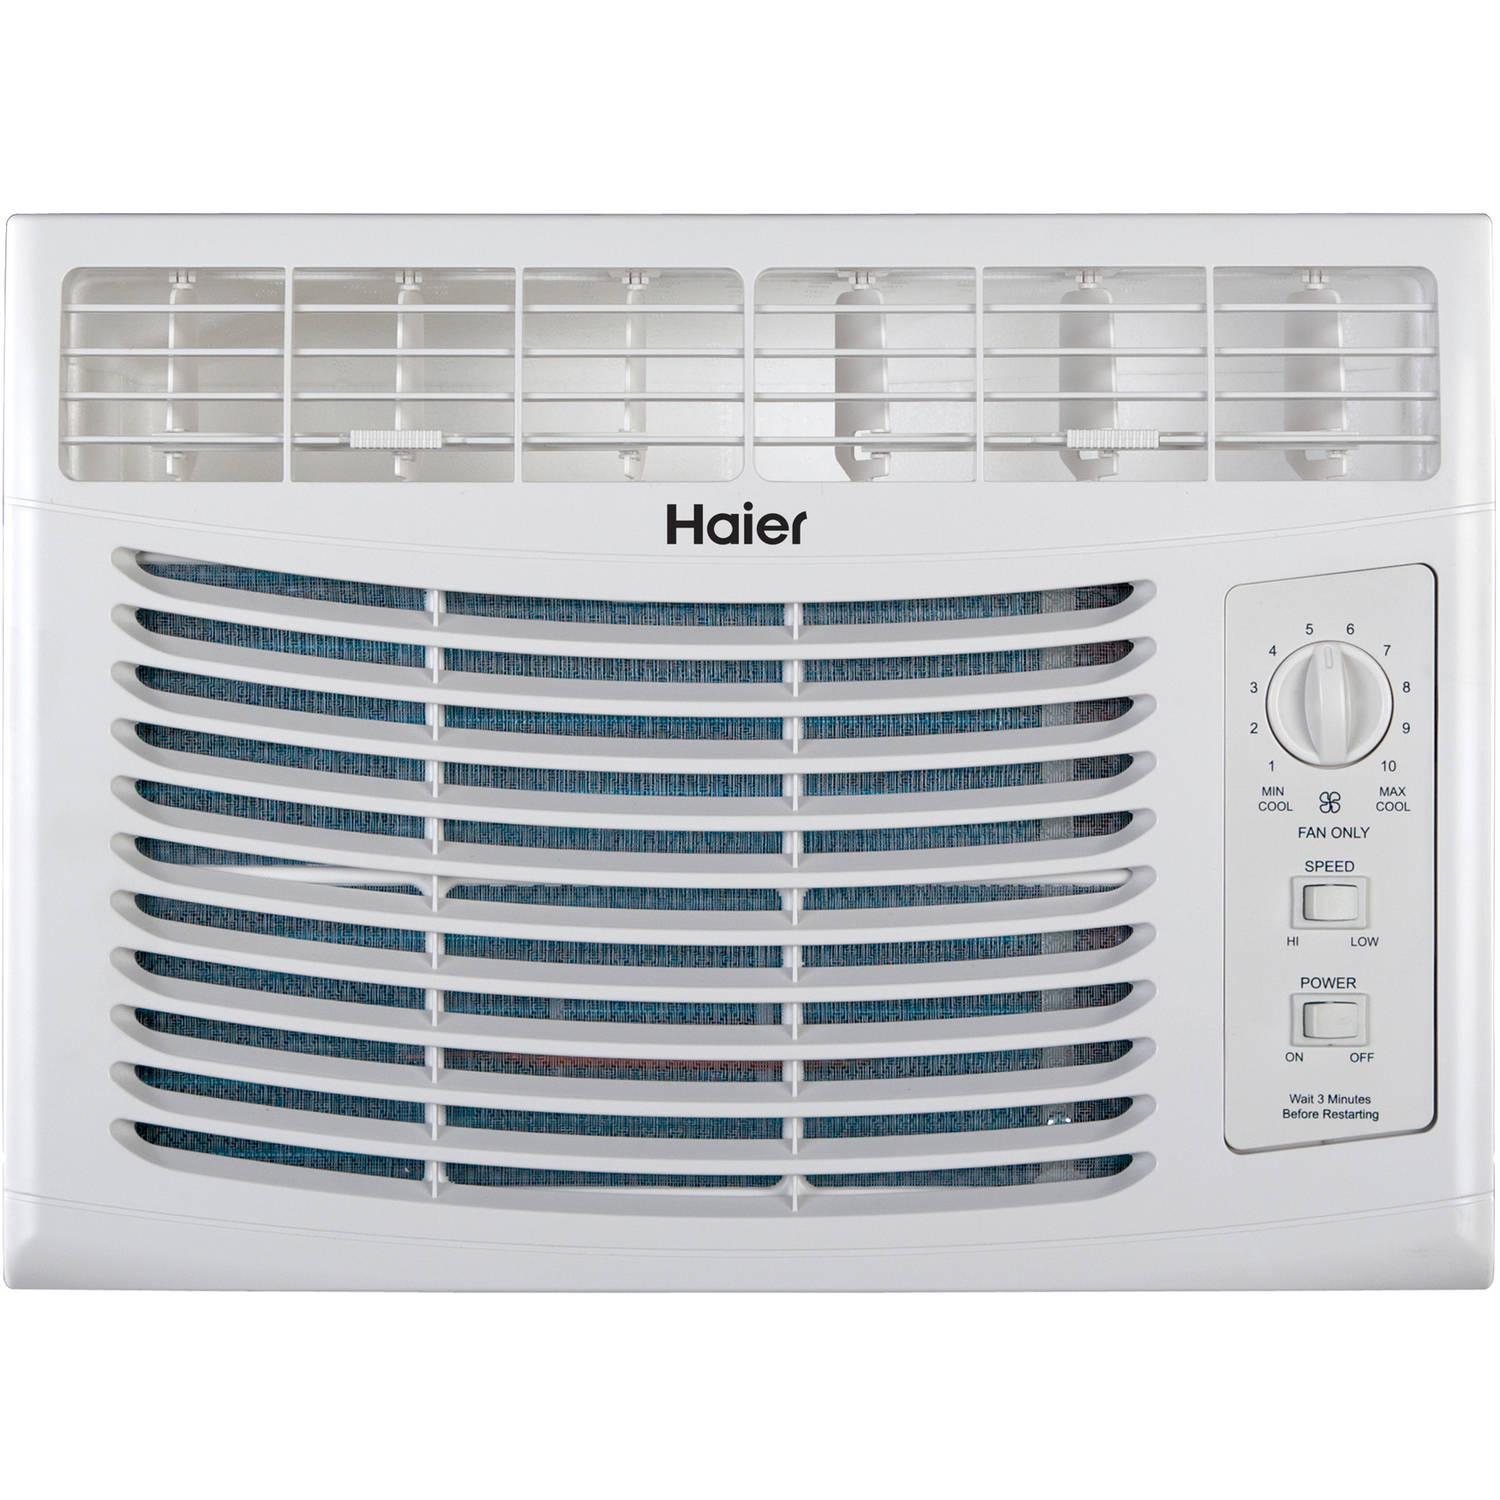 a0ba496f 06c3 4ad6 94b5 f70ad5dc3435_1.5ff0e9222656490bc15f9b304b3013d6 haier 5,000 btu window air conditioner, 115v, hwf05xcr l walmart com haier window air conditioner wiring diagram at crackthecode.co